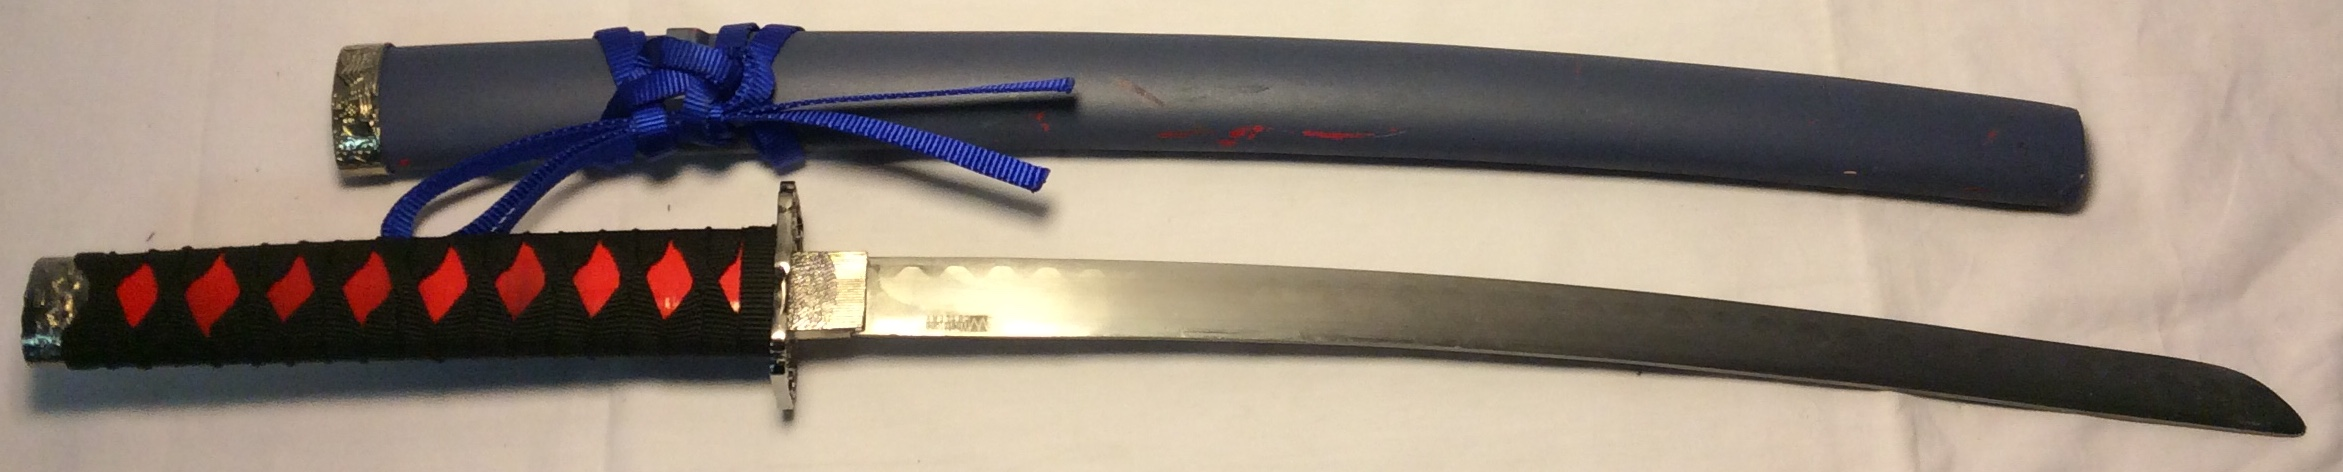 Wakizashi sword with Blue Saya